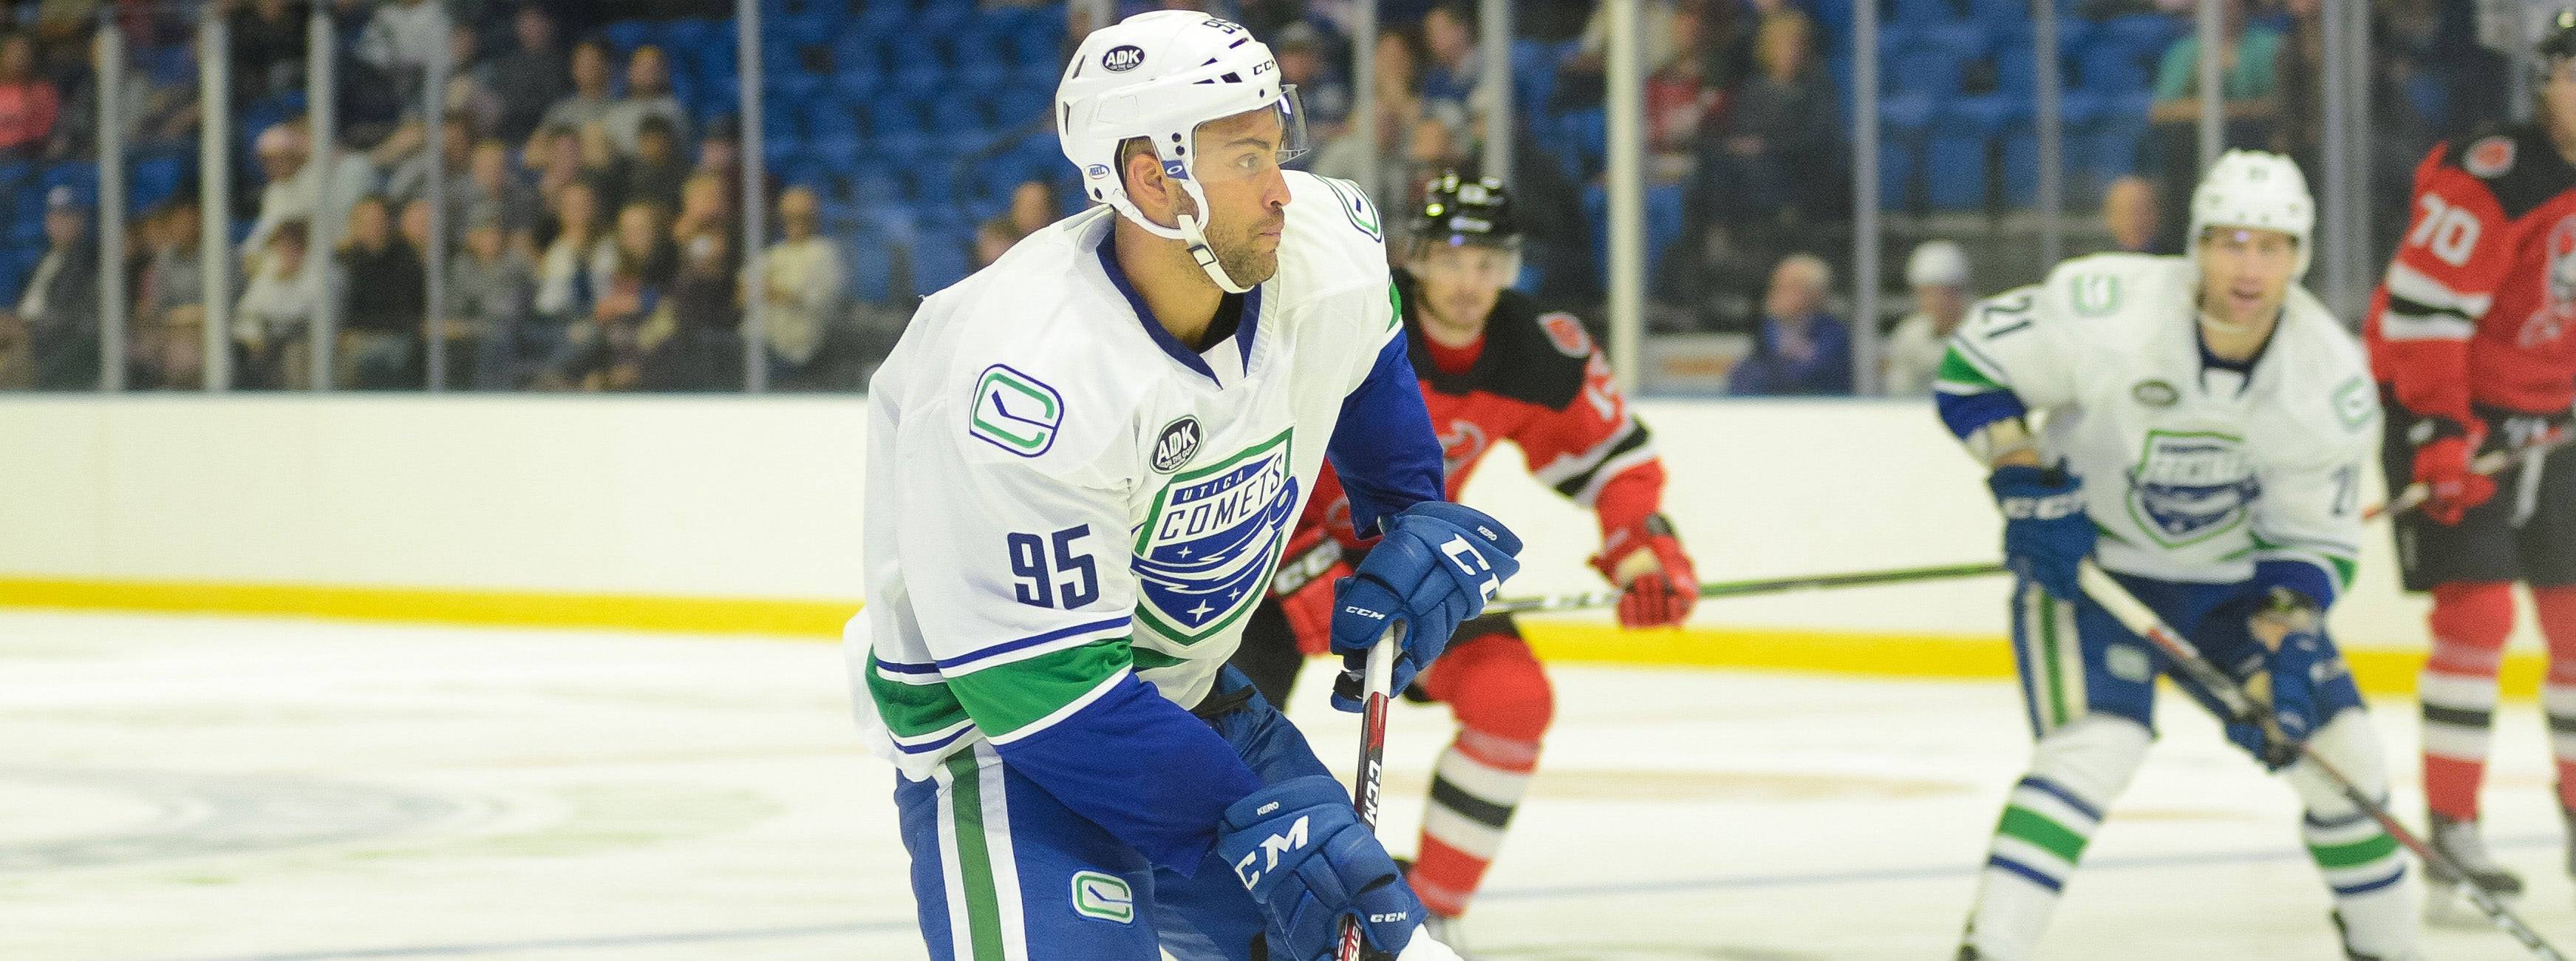 COMETS BEGIN 2019-20 SEASON AT BINGHAMTON